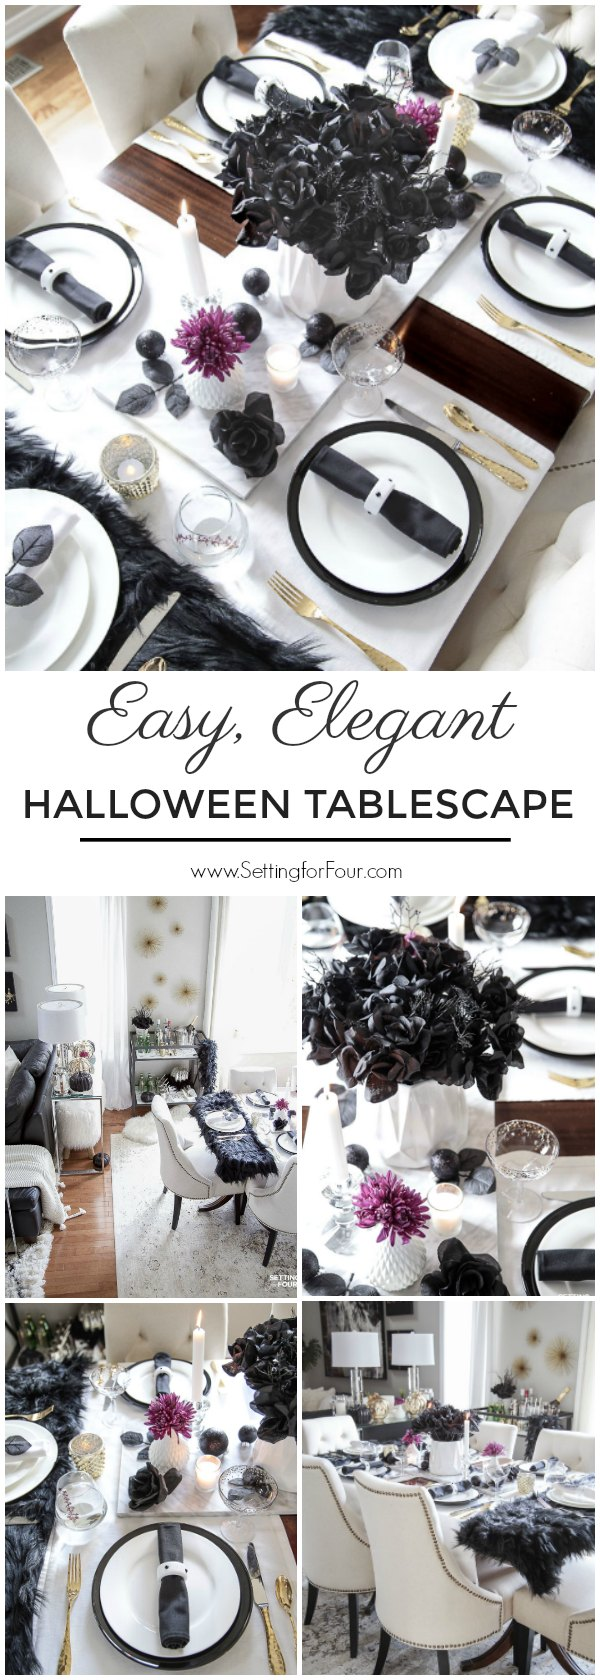 Easy Elegant Halloween Table Decorations & Centerpiece Idea. Spooky black rose centerpiece.#halloween #decor #spooky #centerpiece #table #entertaining #party #elegant #easy